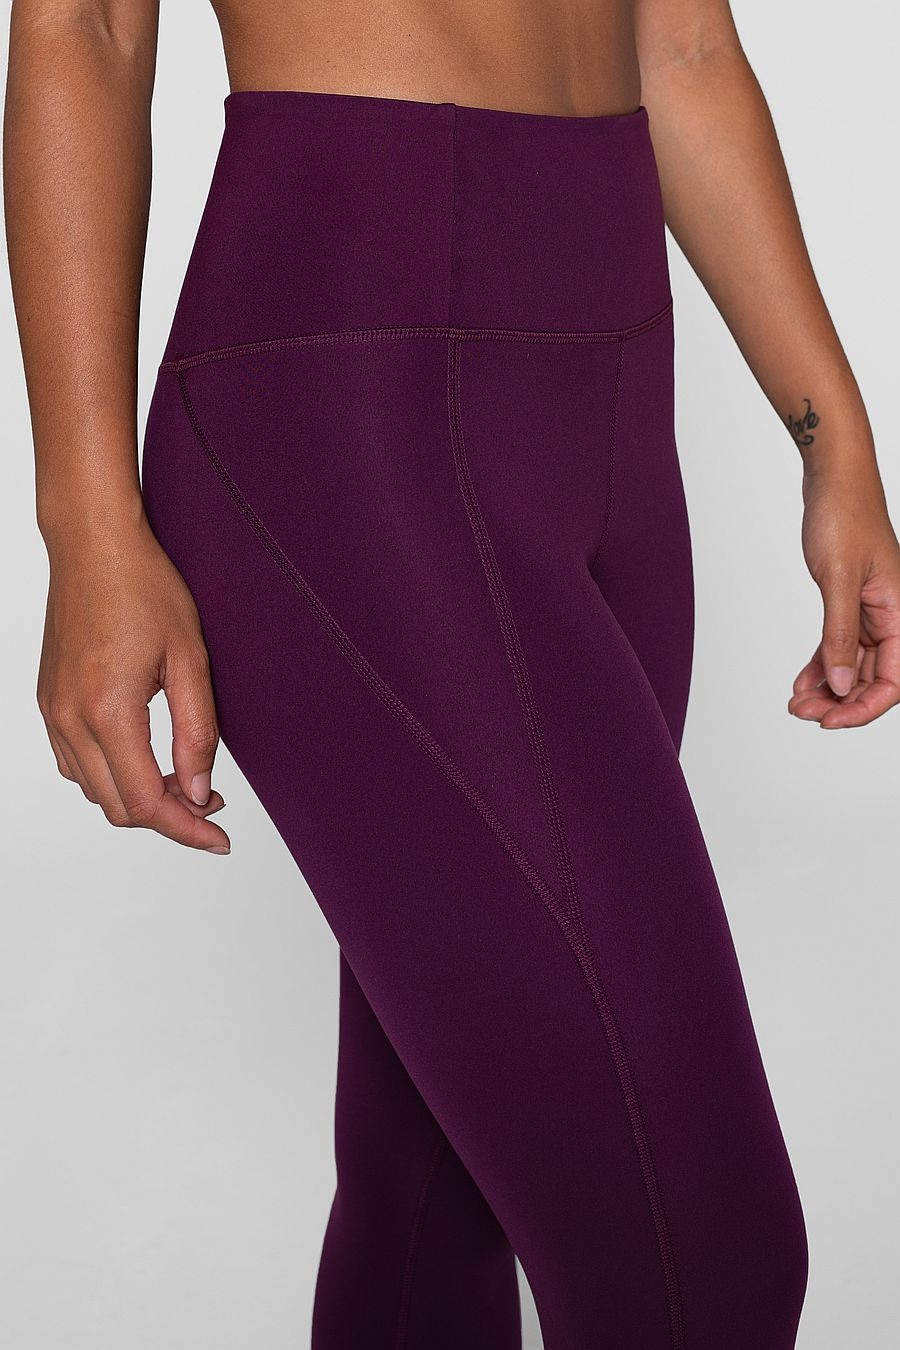 "Girlfriend Collective Plum Compressive Legging (23 3/4"")"